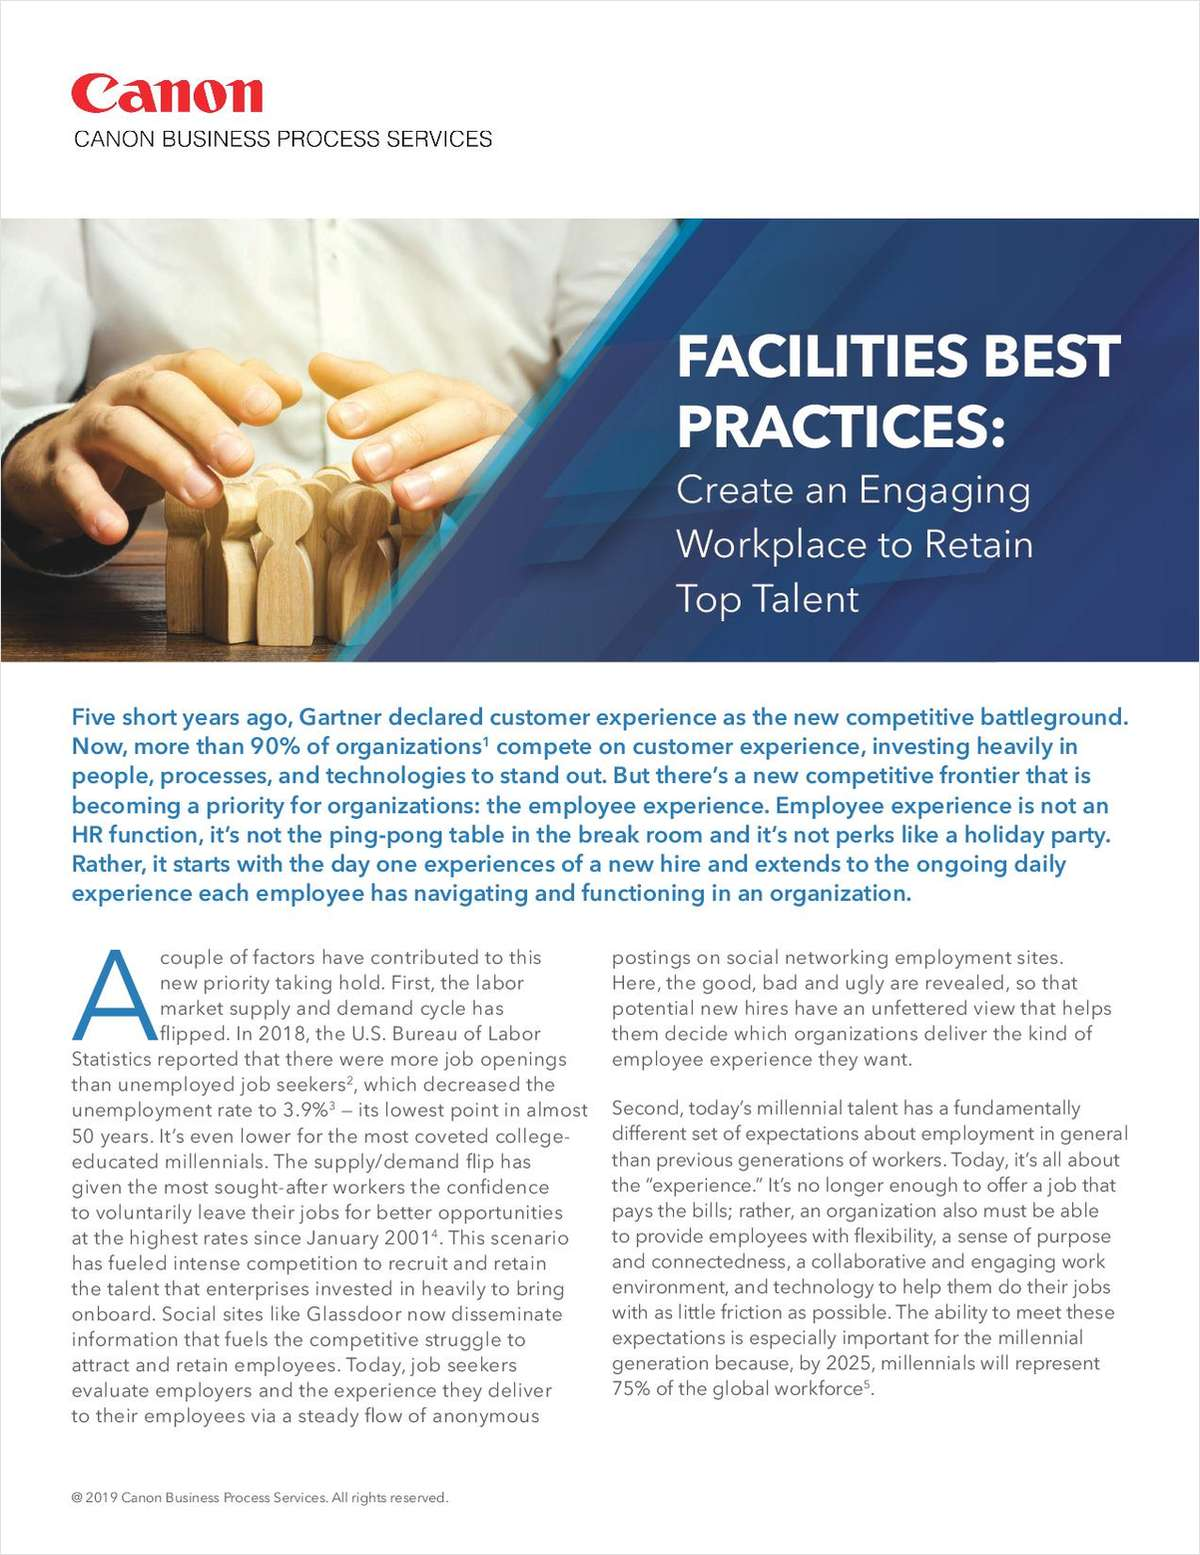 Facilities Best Practices: Create an Engaging Workplace to Retain Top Talent